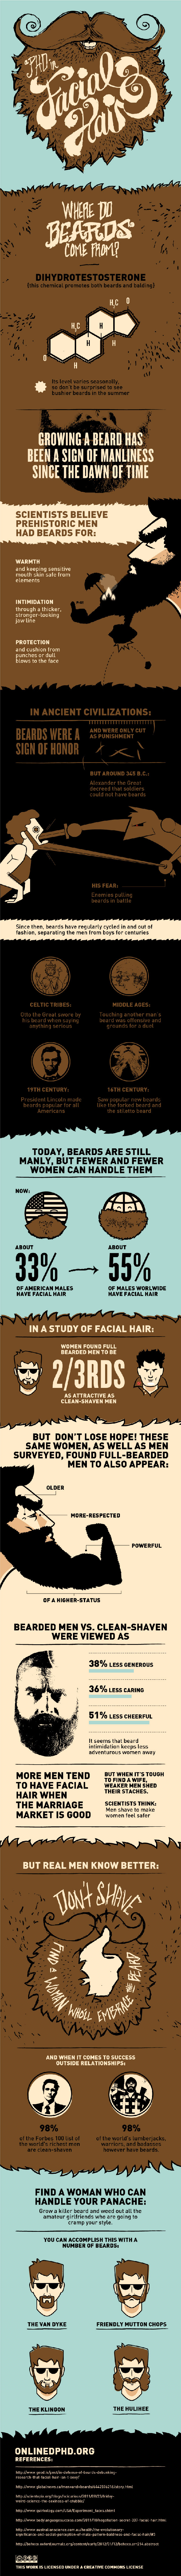 The Facial Hair - Everything you need to know about beards.